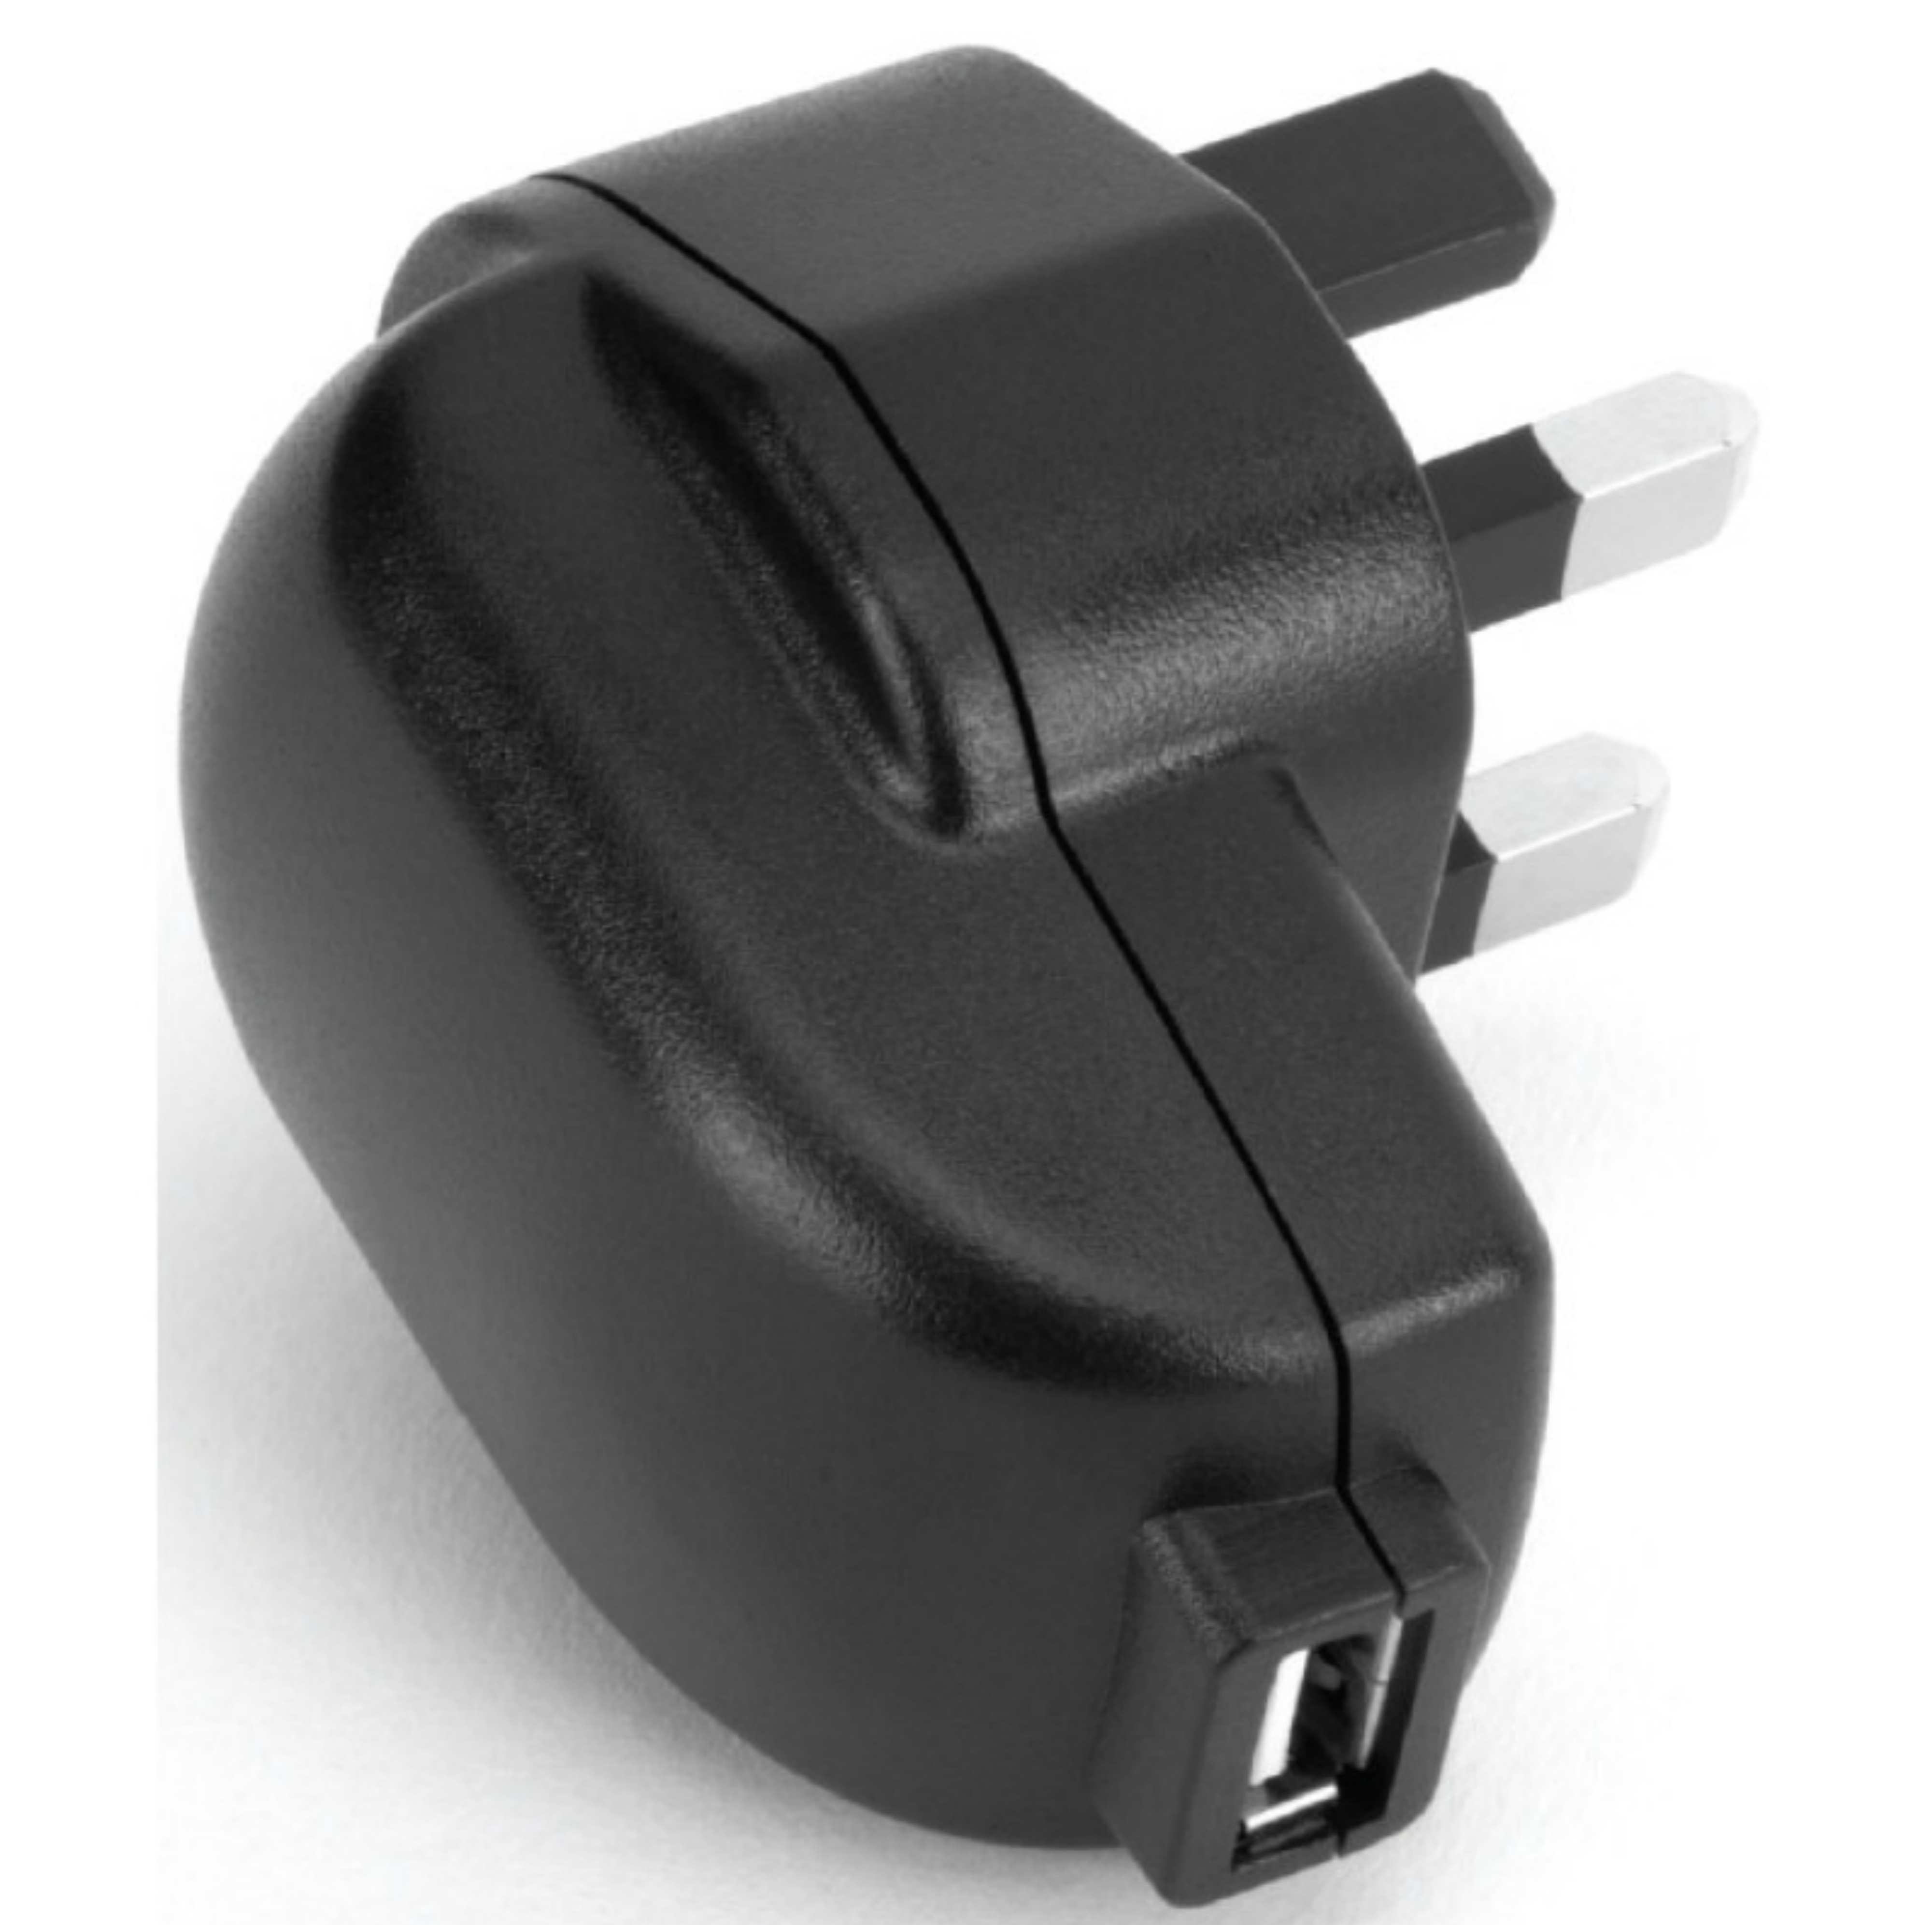 Griffin GC42507 Universal USB Wall Charger|2.1A|10W|Apple|Samsung|LG|HTC|Black|